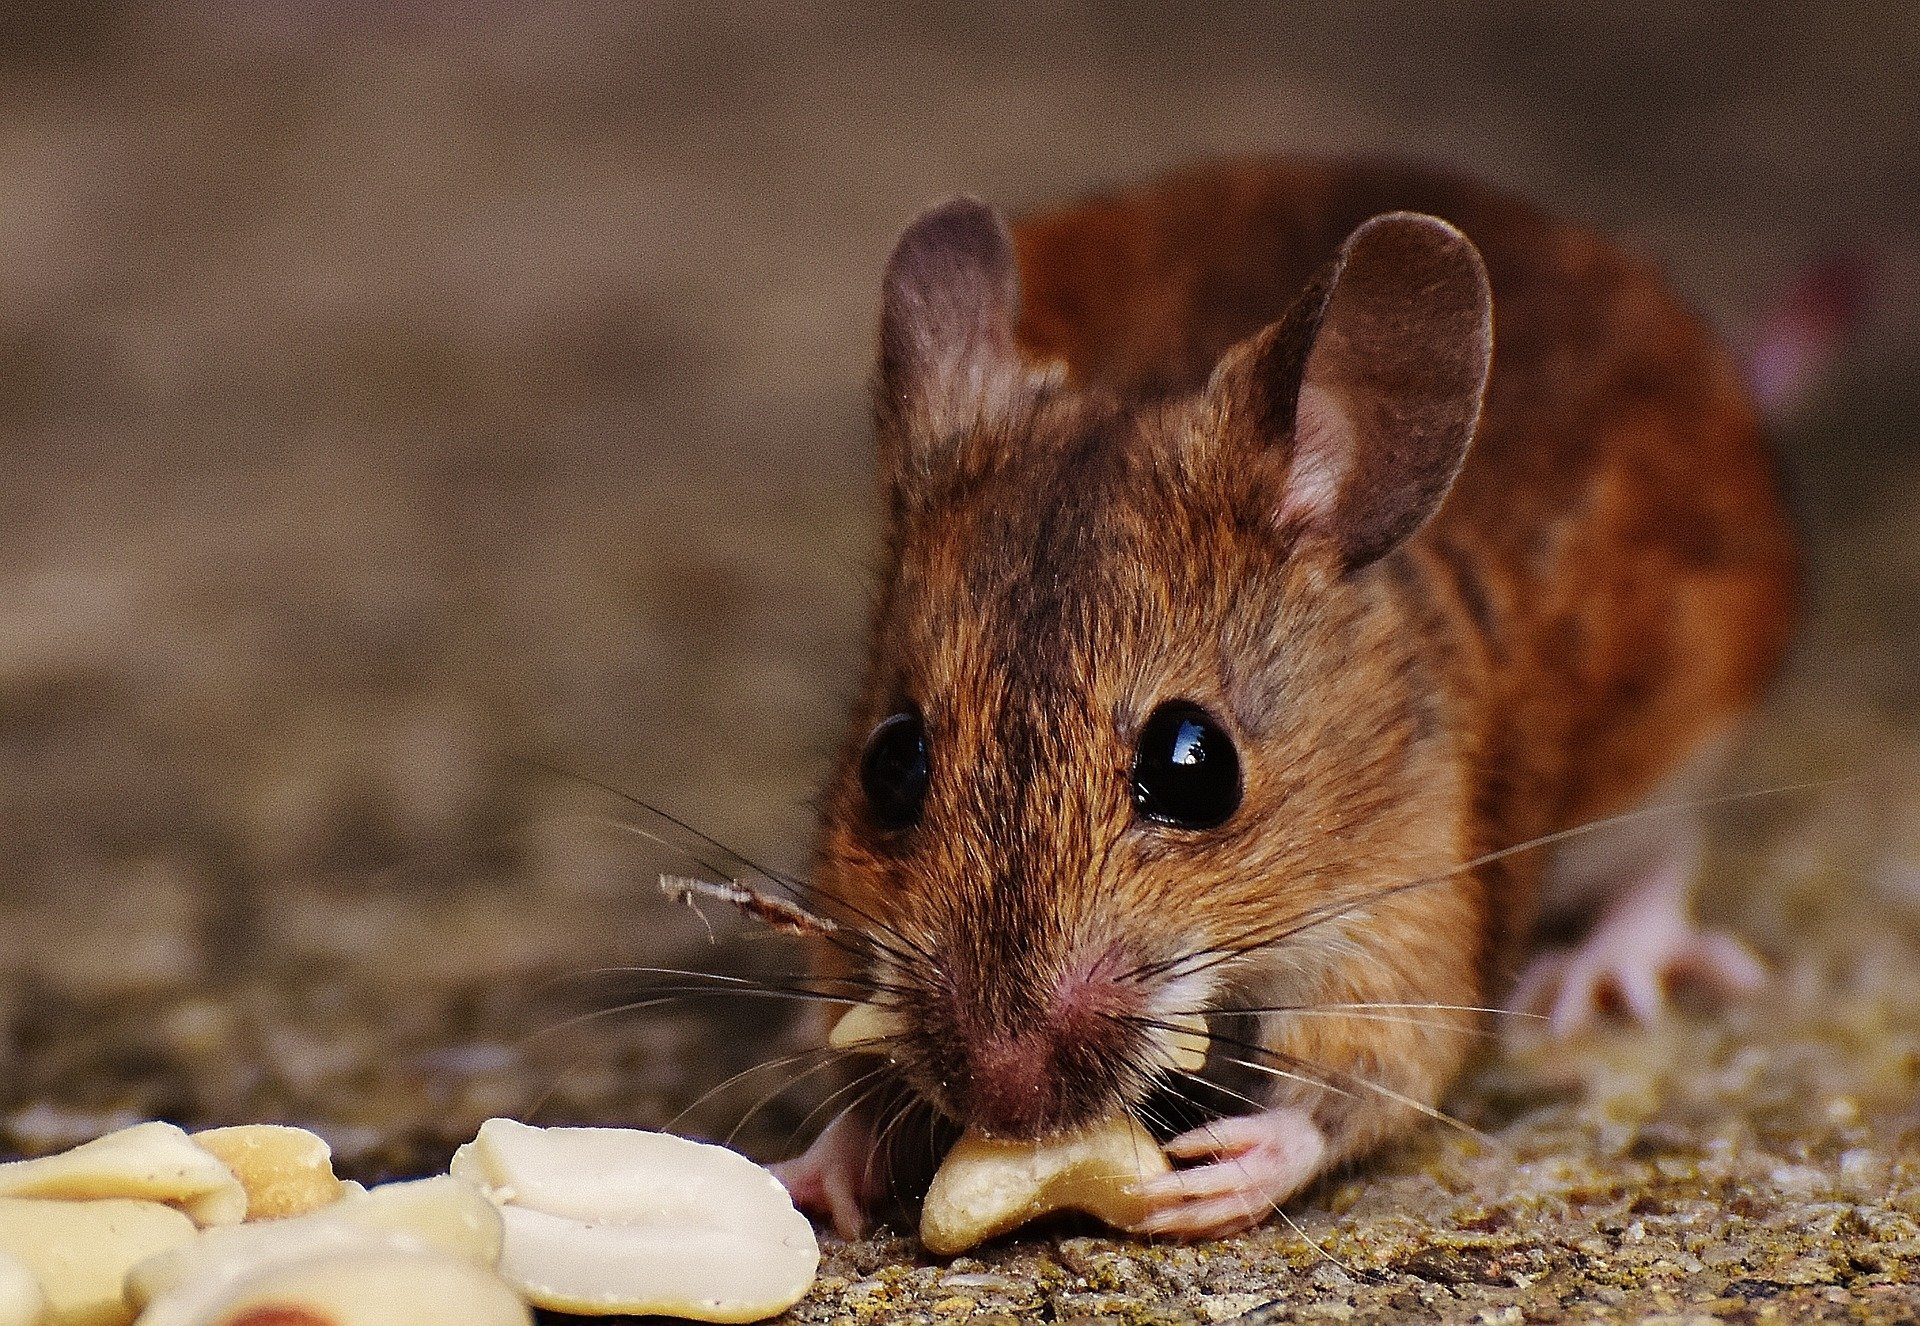 Blocking protein's activity restores cognition in old mice, study shows